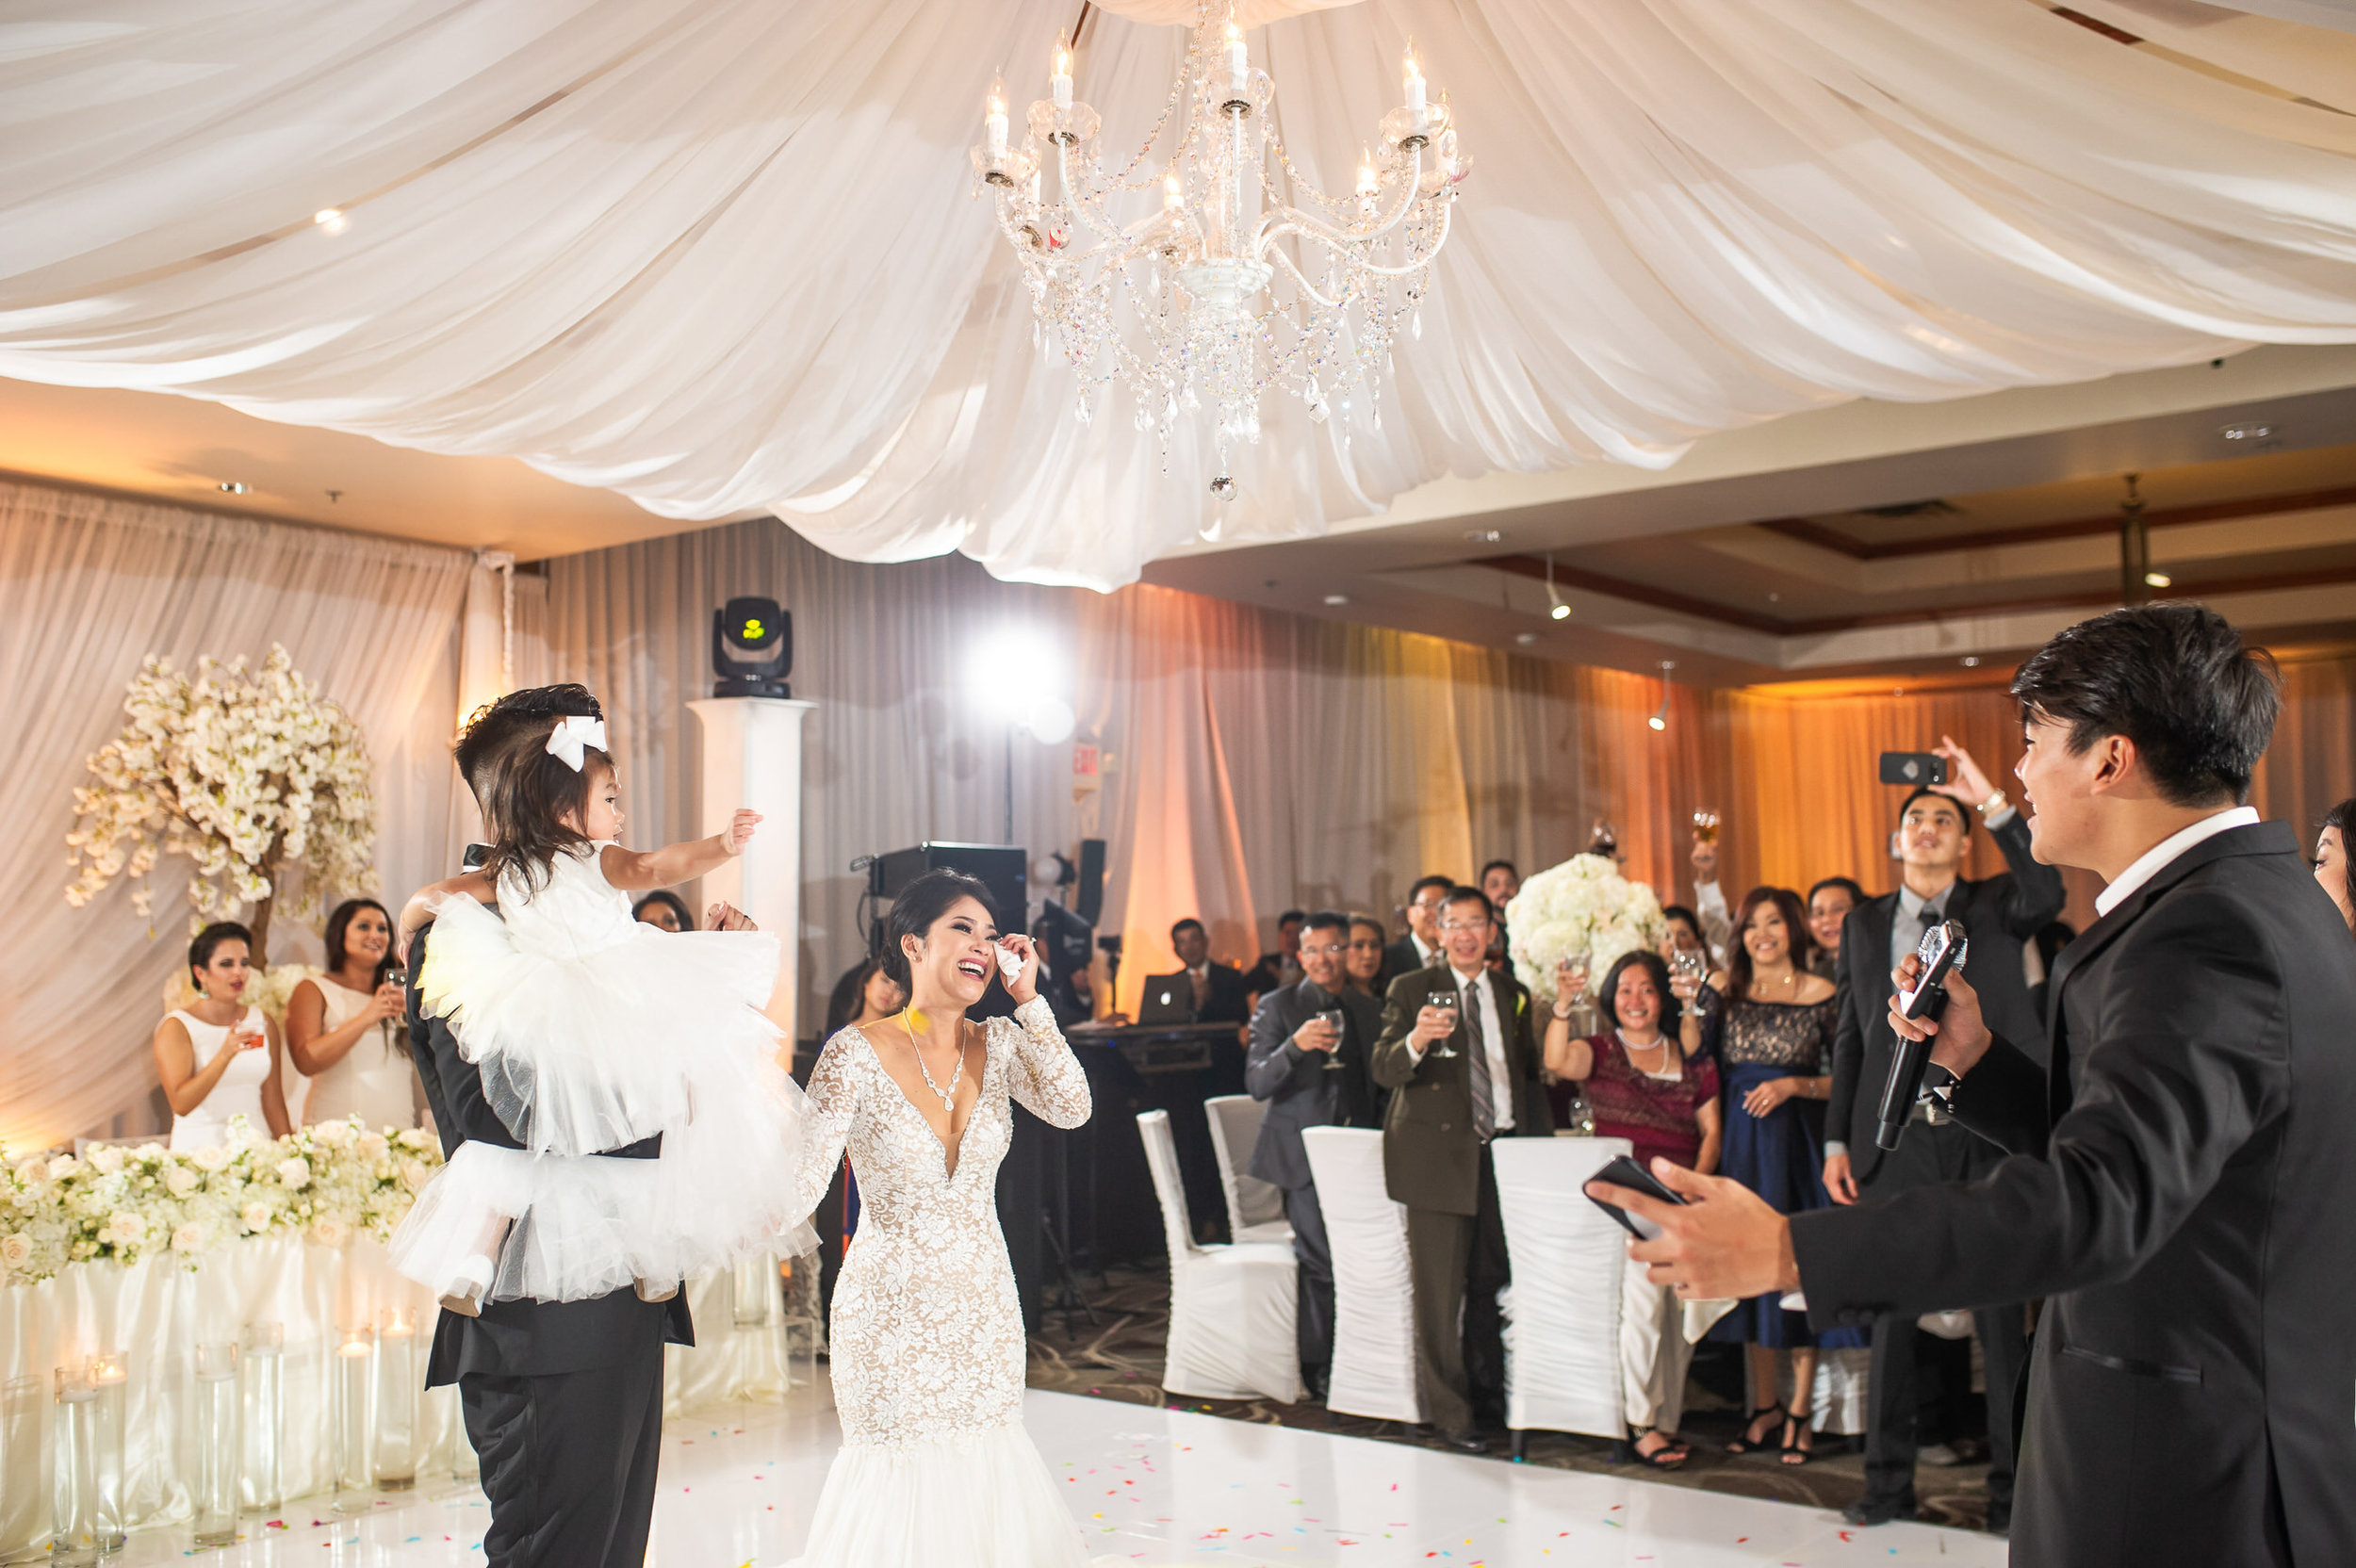 Dream_Wedding_Thanh_Thanh-21249.jpg